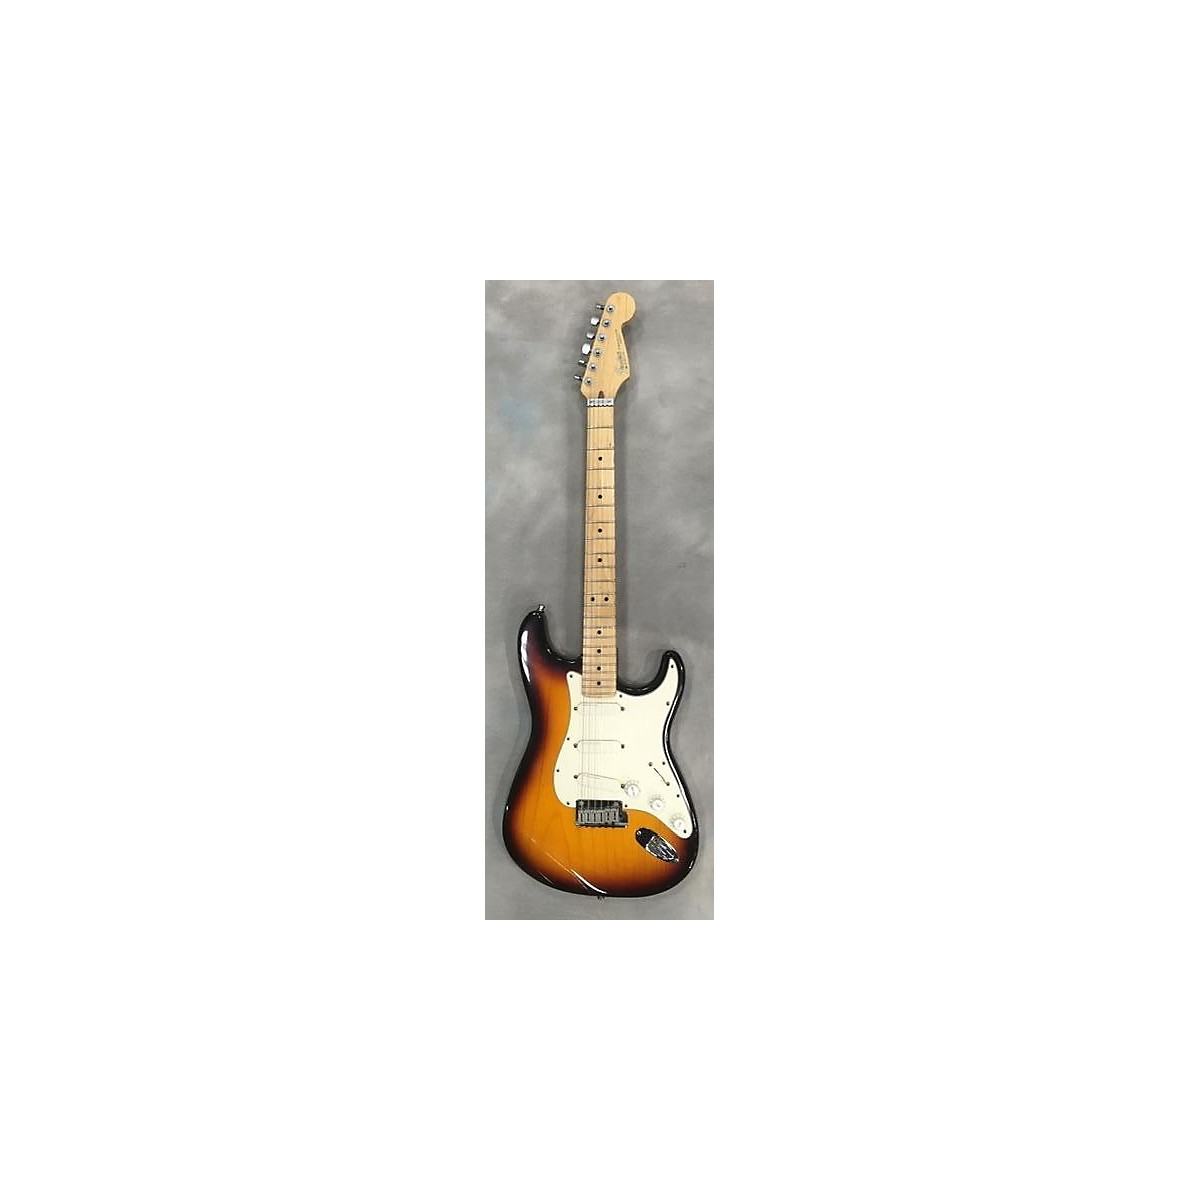 Fender 1991 Stratocaster Plus Solid Body Electric Guitar